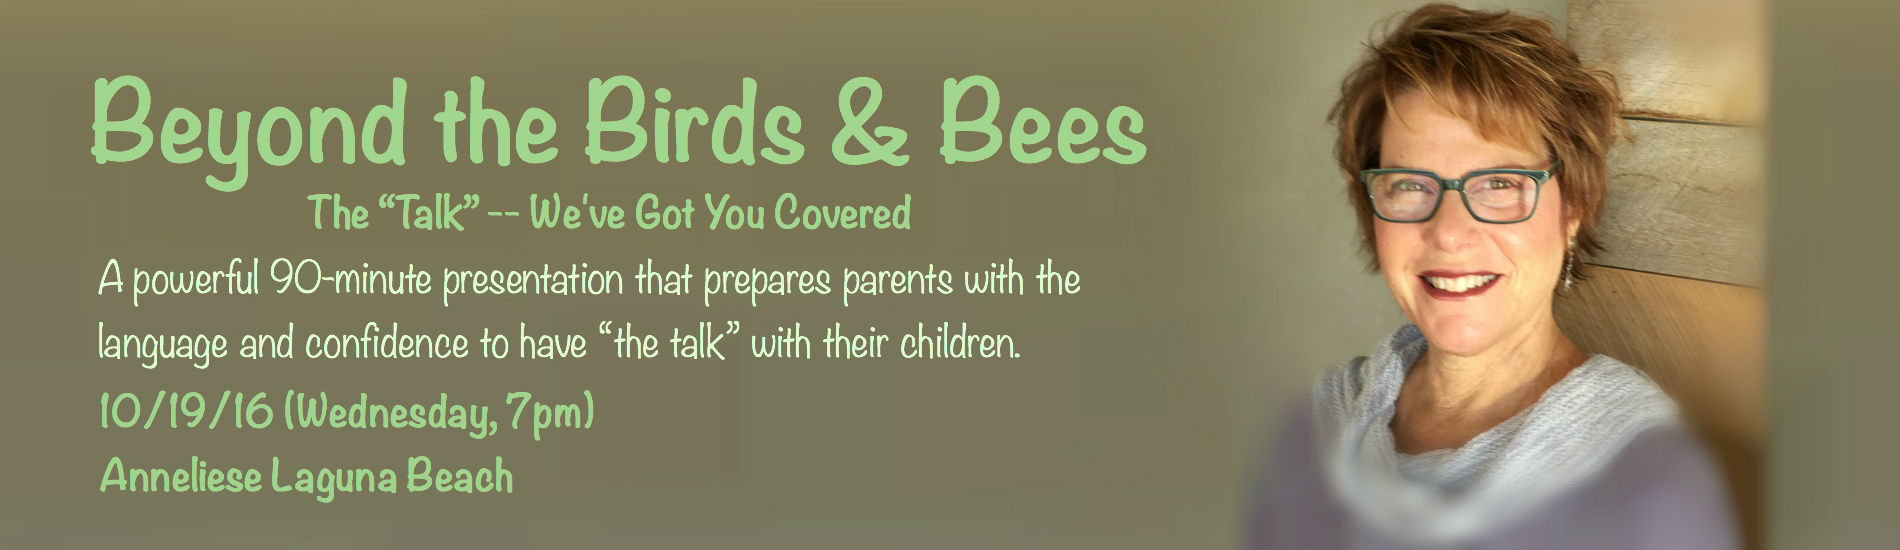 beyond-birds-and-bees-banner-draft-3